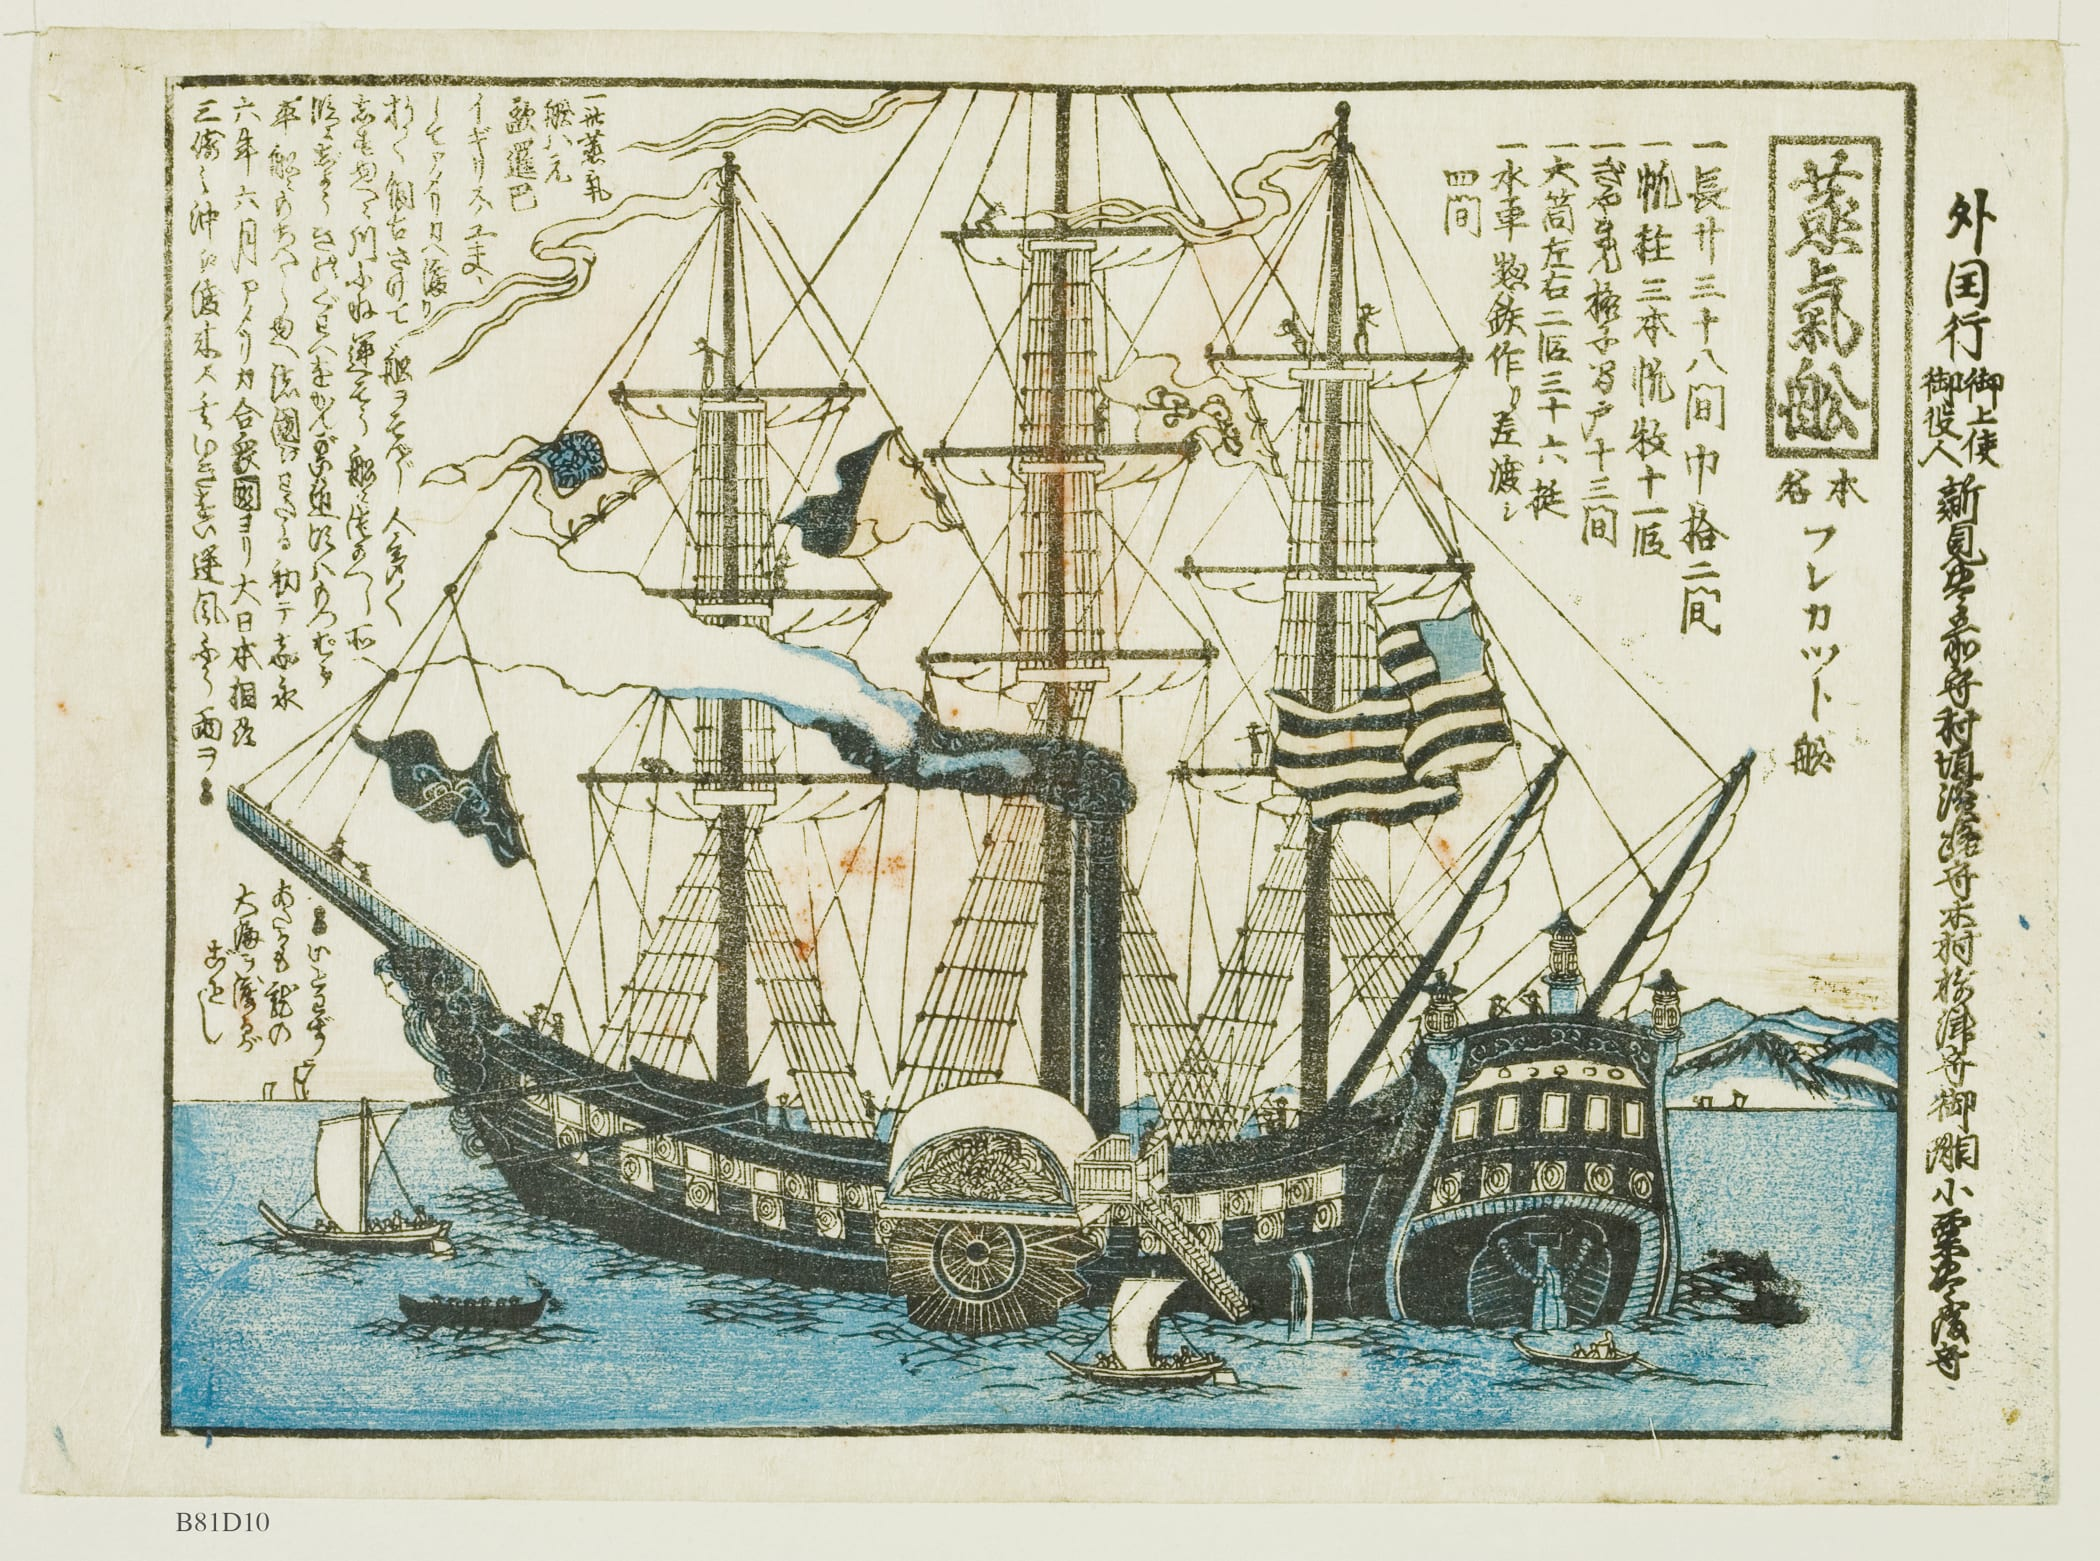 USS Powhatan carrying the First Japanese Embassy to America, approx. 1860. Woodblock print, ink and colors on paper. (source: nichibei.org)